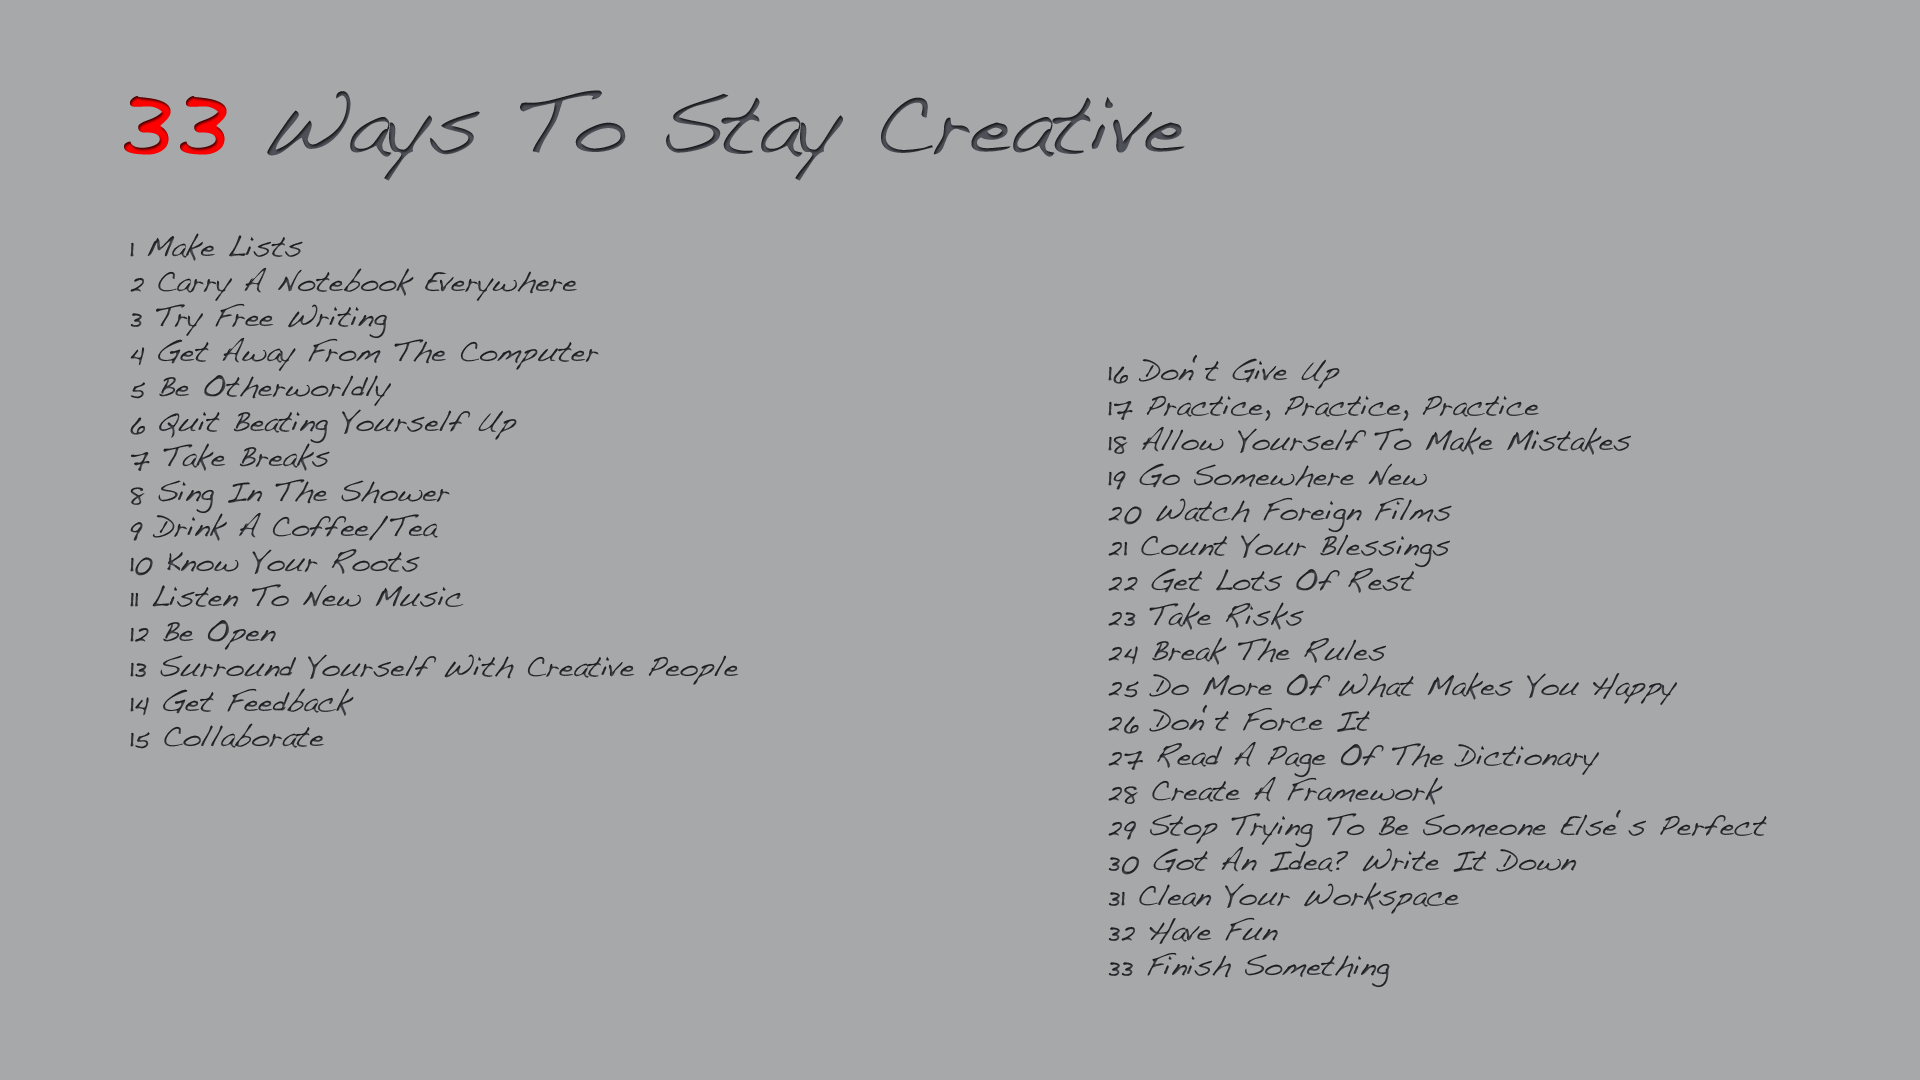 33 ways to stay creative